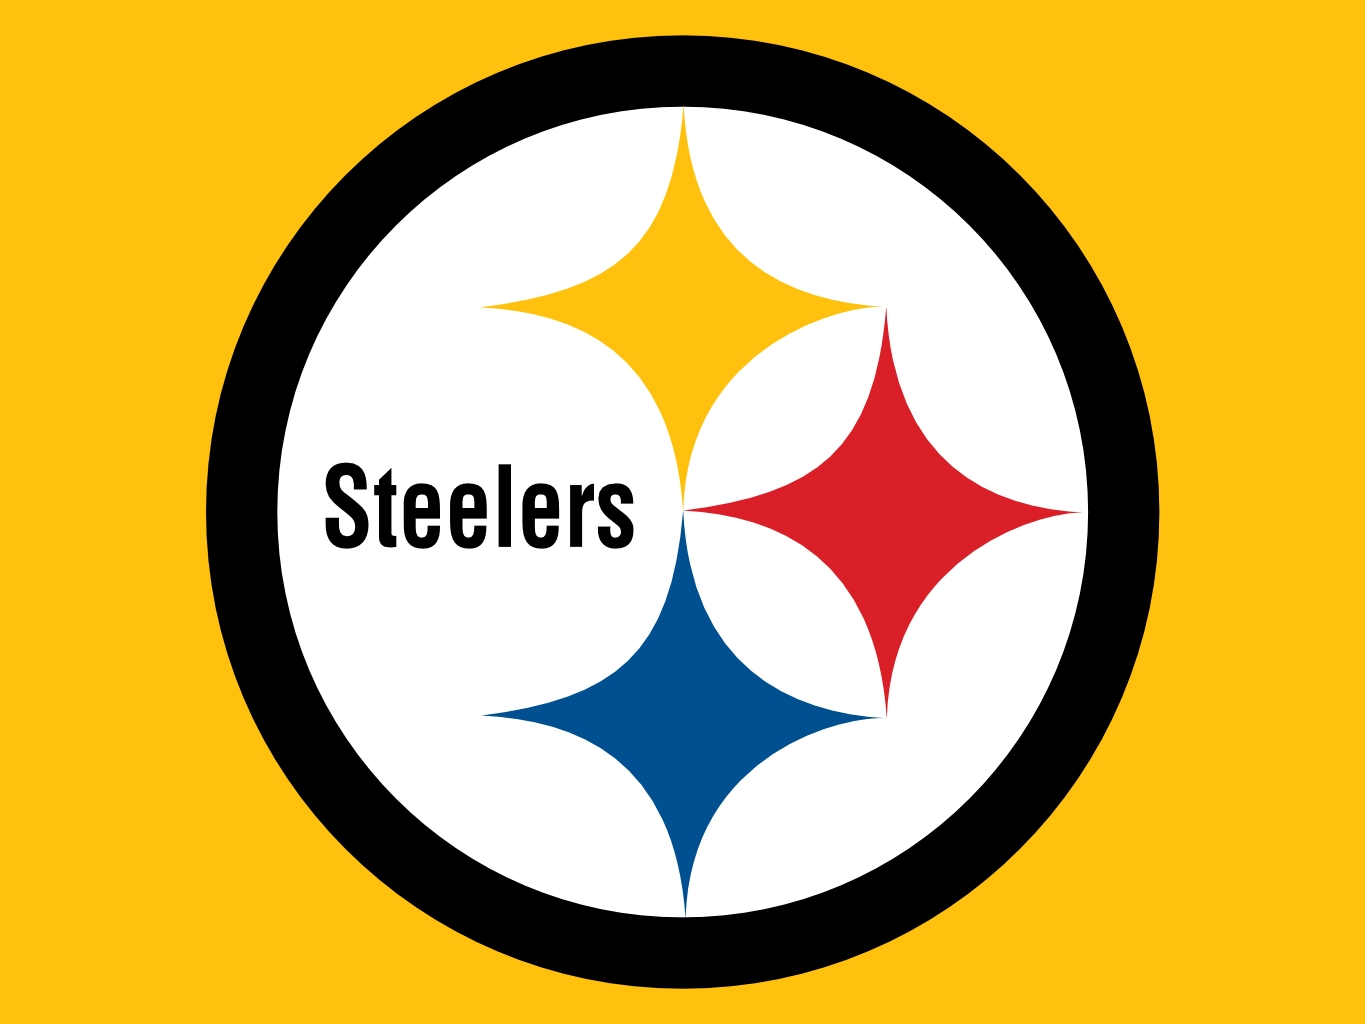 Steelers football images clipart picture freeuse Steelers Logo Clipart | Free download best Steelers Logo ... picture freeuse